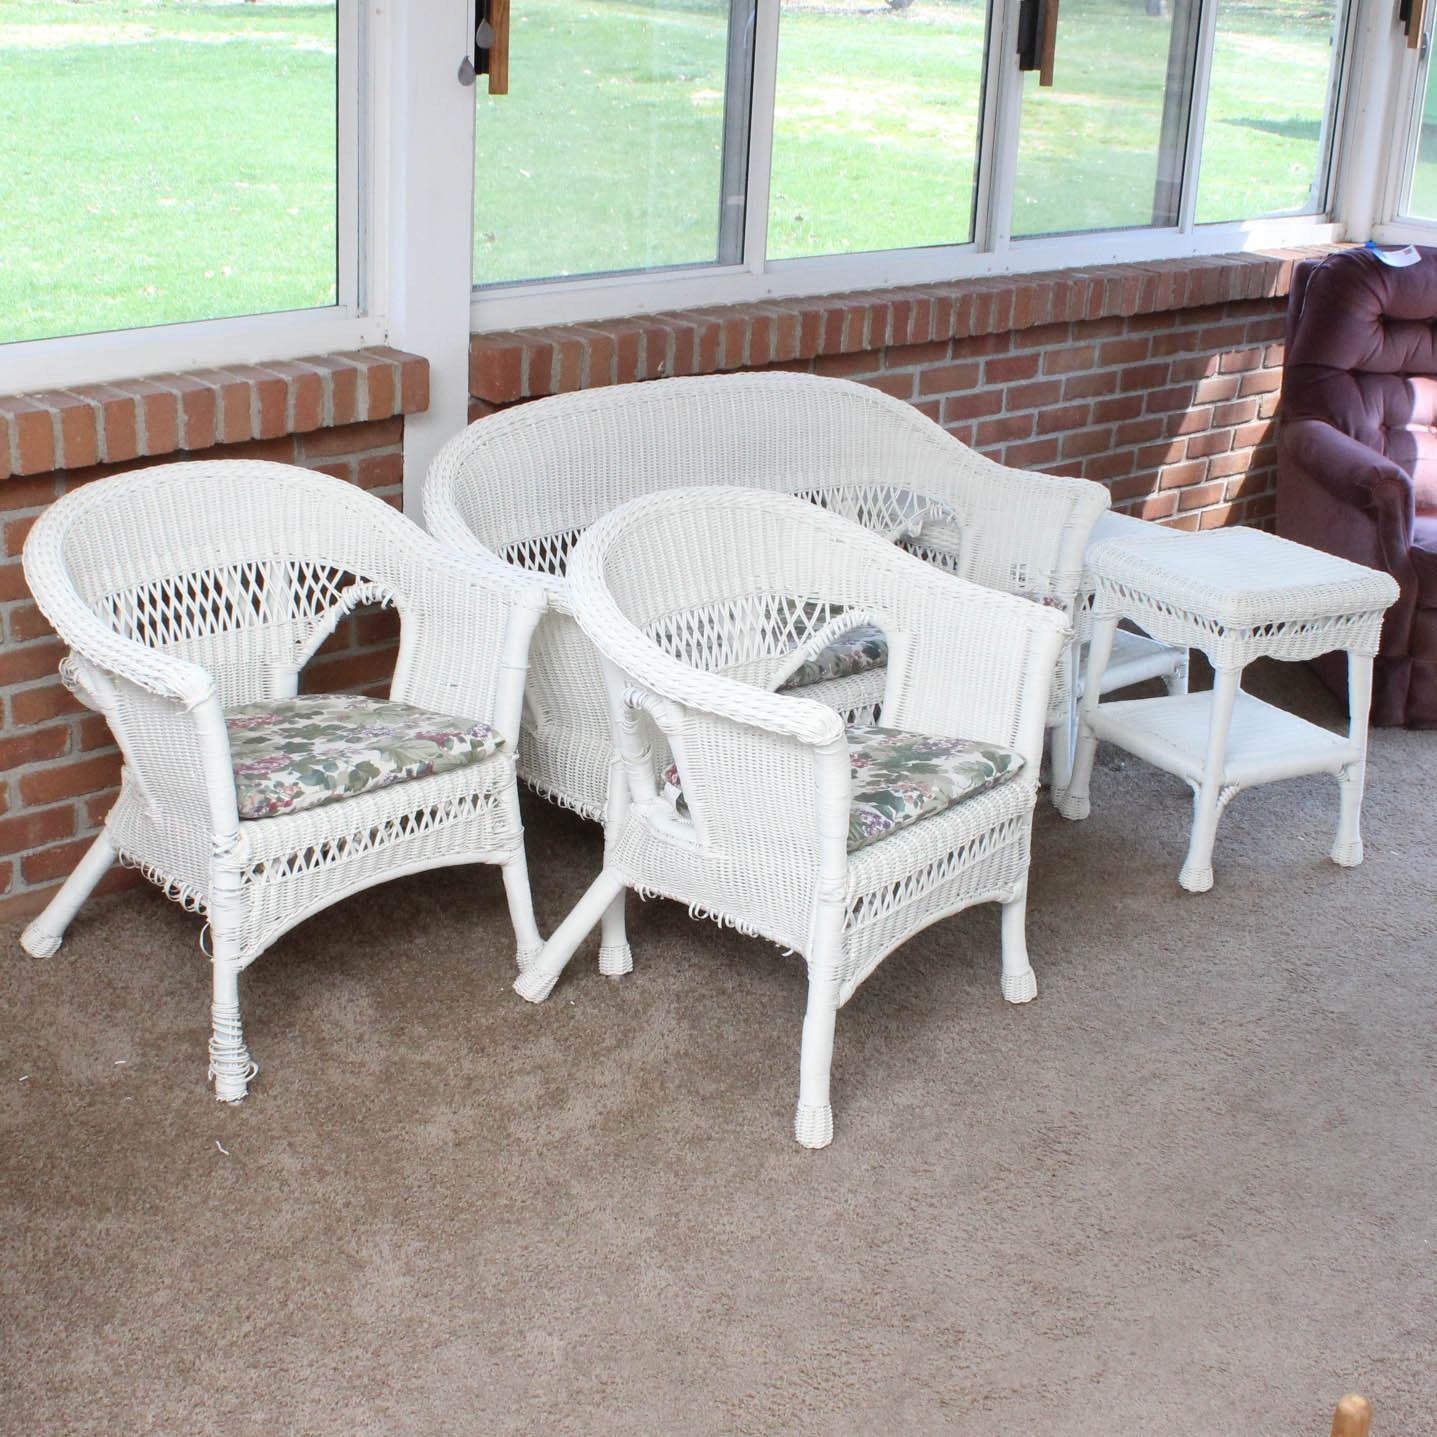 Wicker Style Patio Furniture